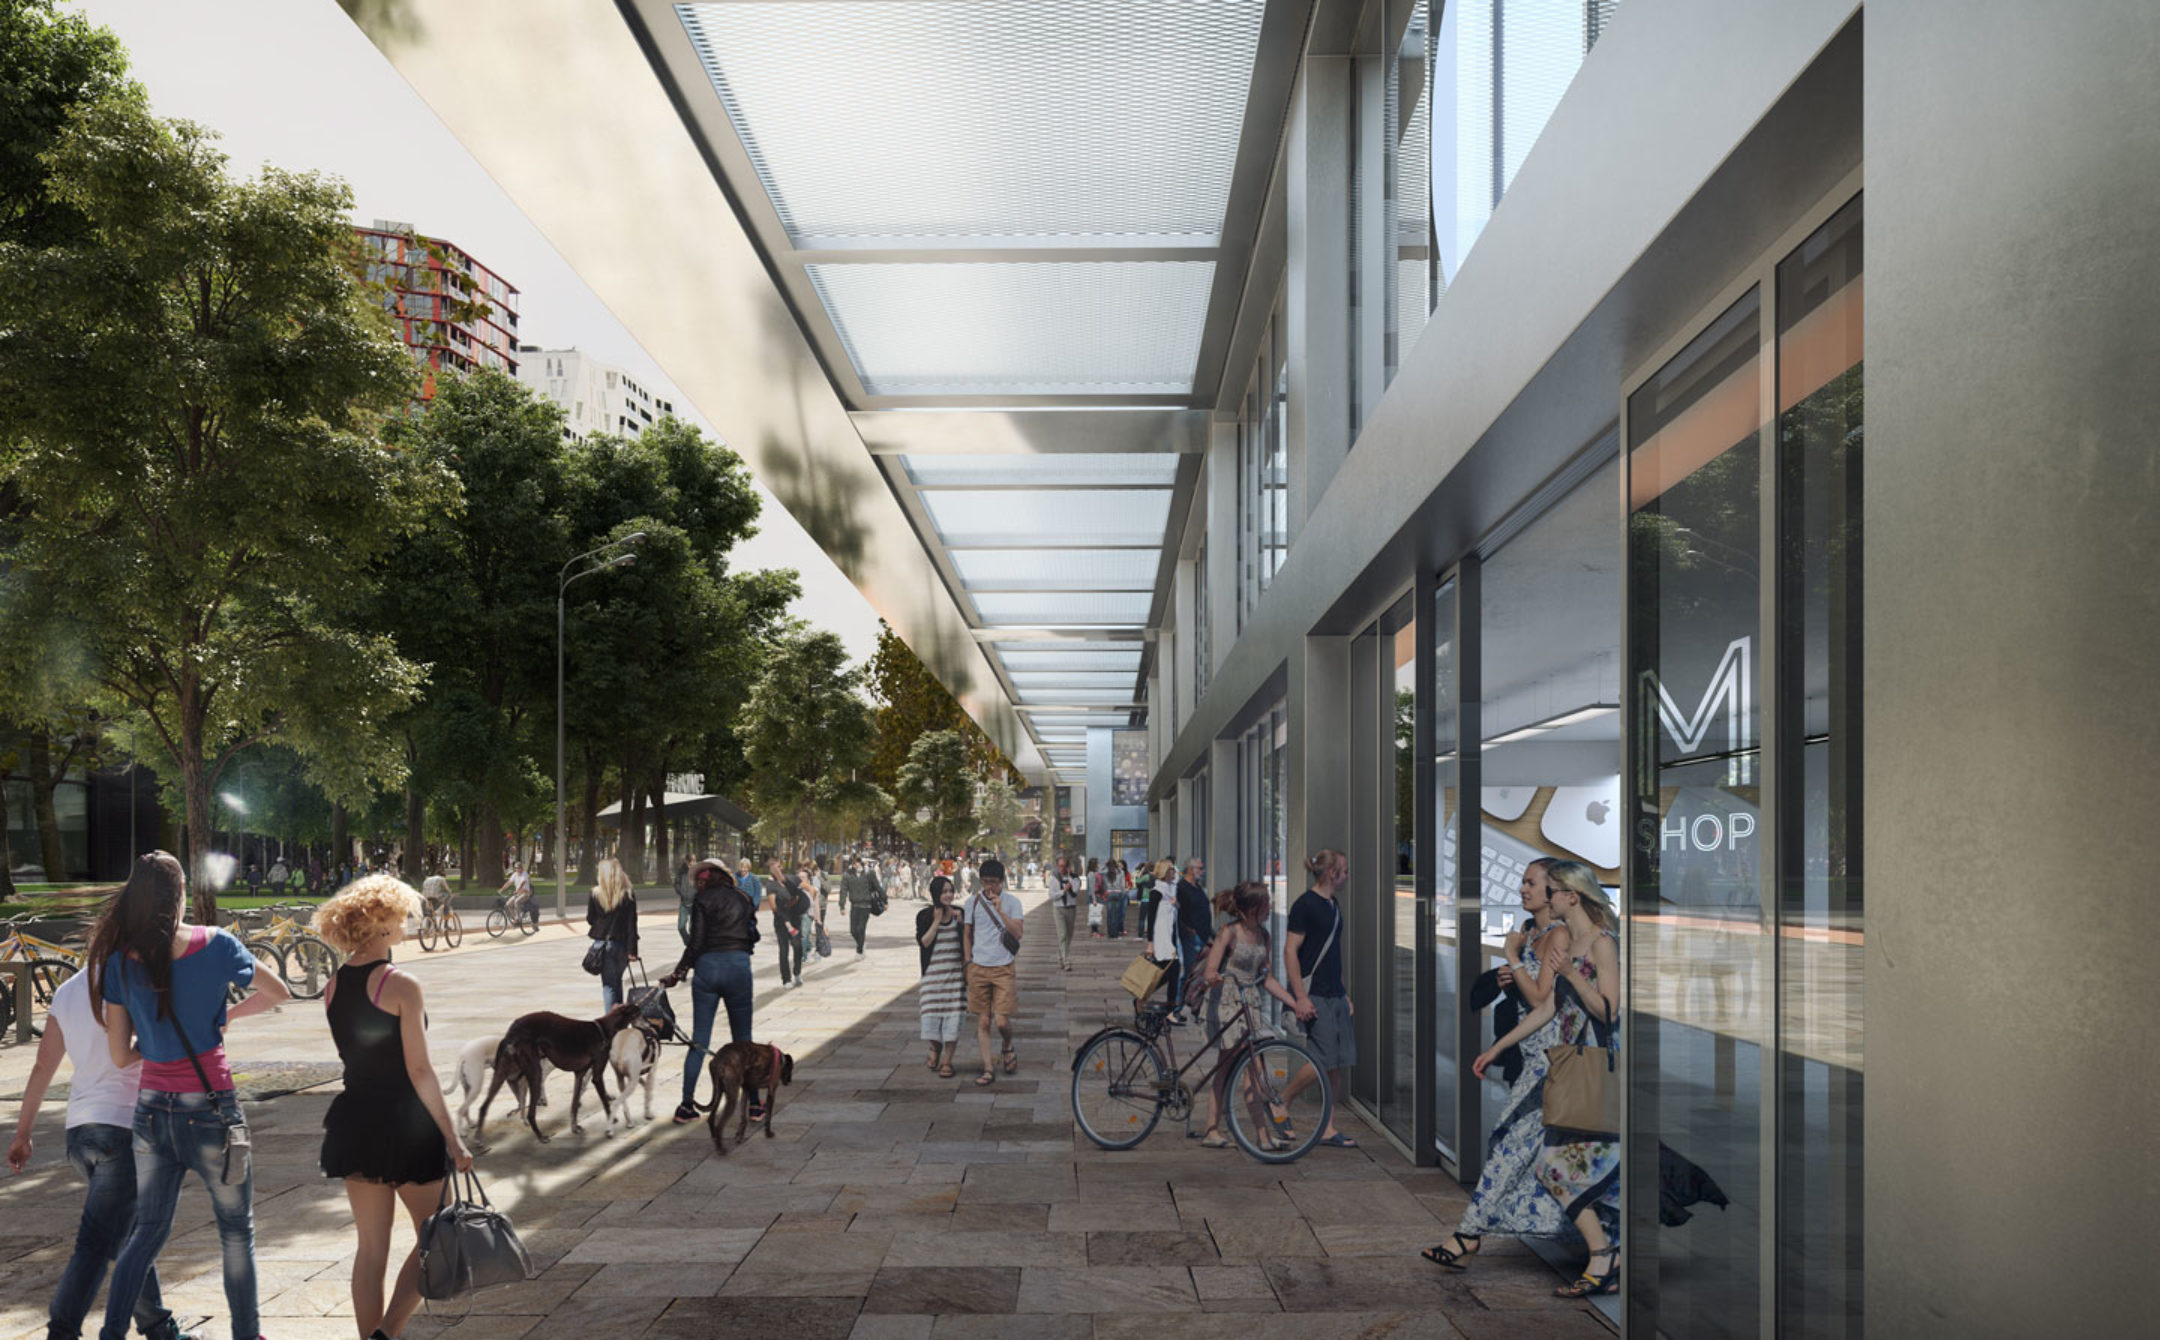 The lively, transparent plinth – below the wide office canopy that keeps the spacious walkway dry – is suitable for catering and retail outlets, which will fulfil an important intermediary role between The Modernist and the city.